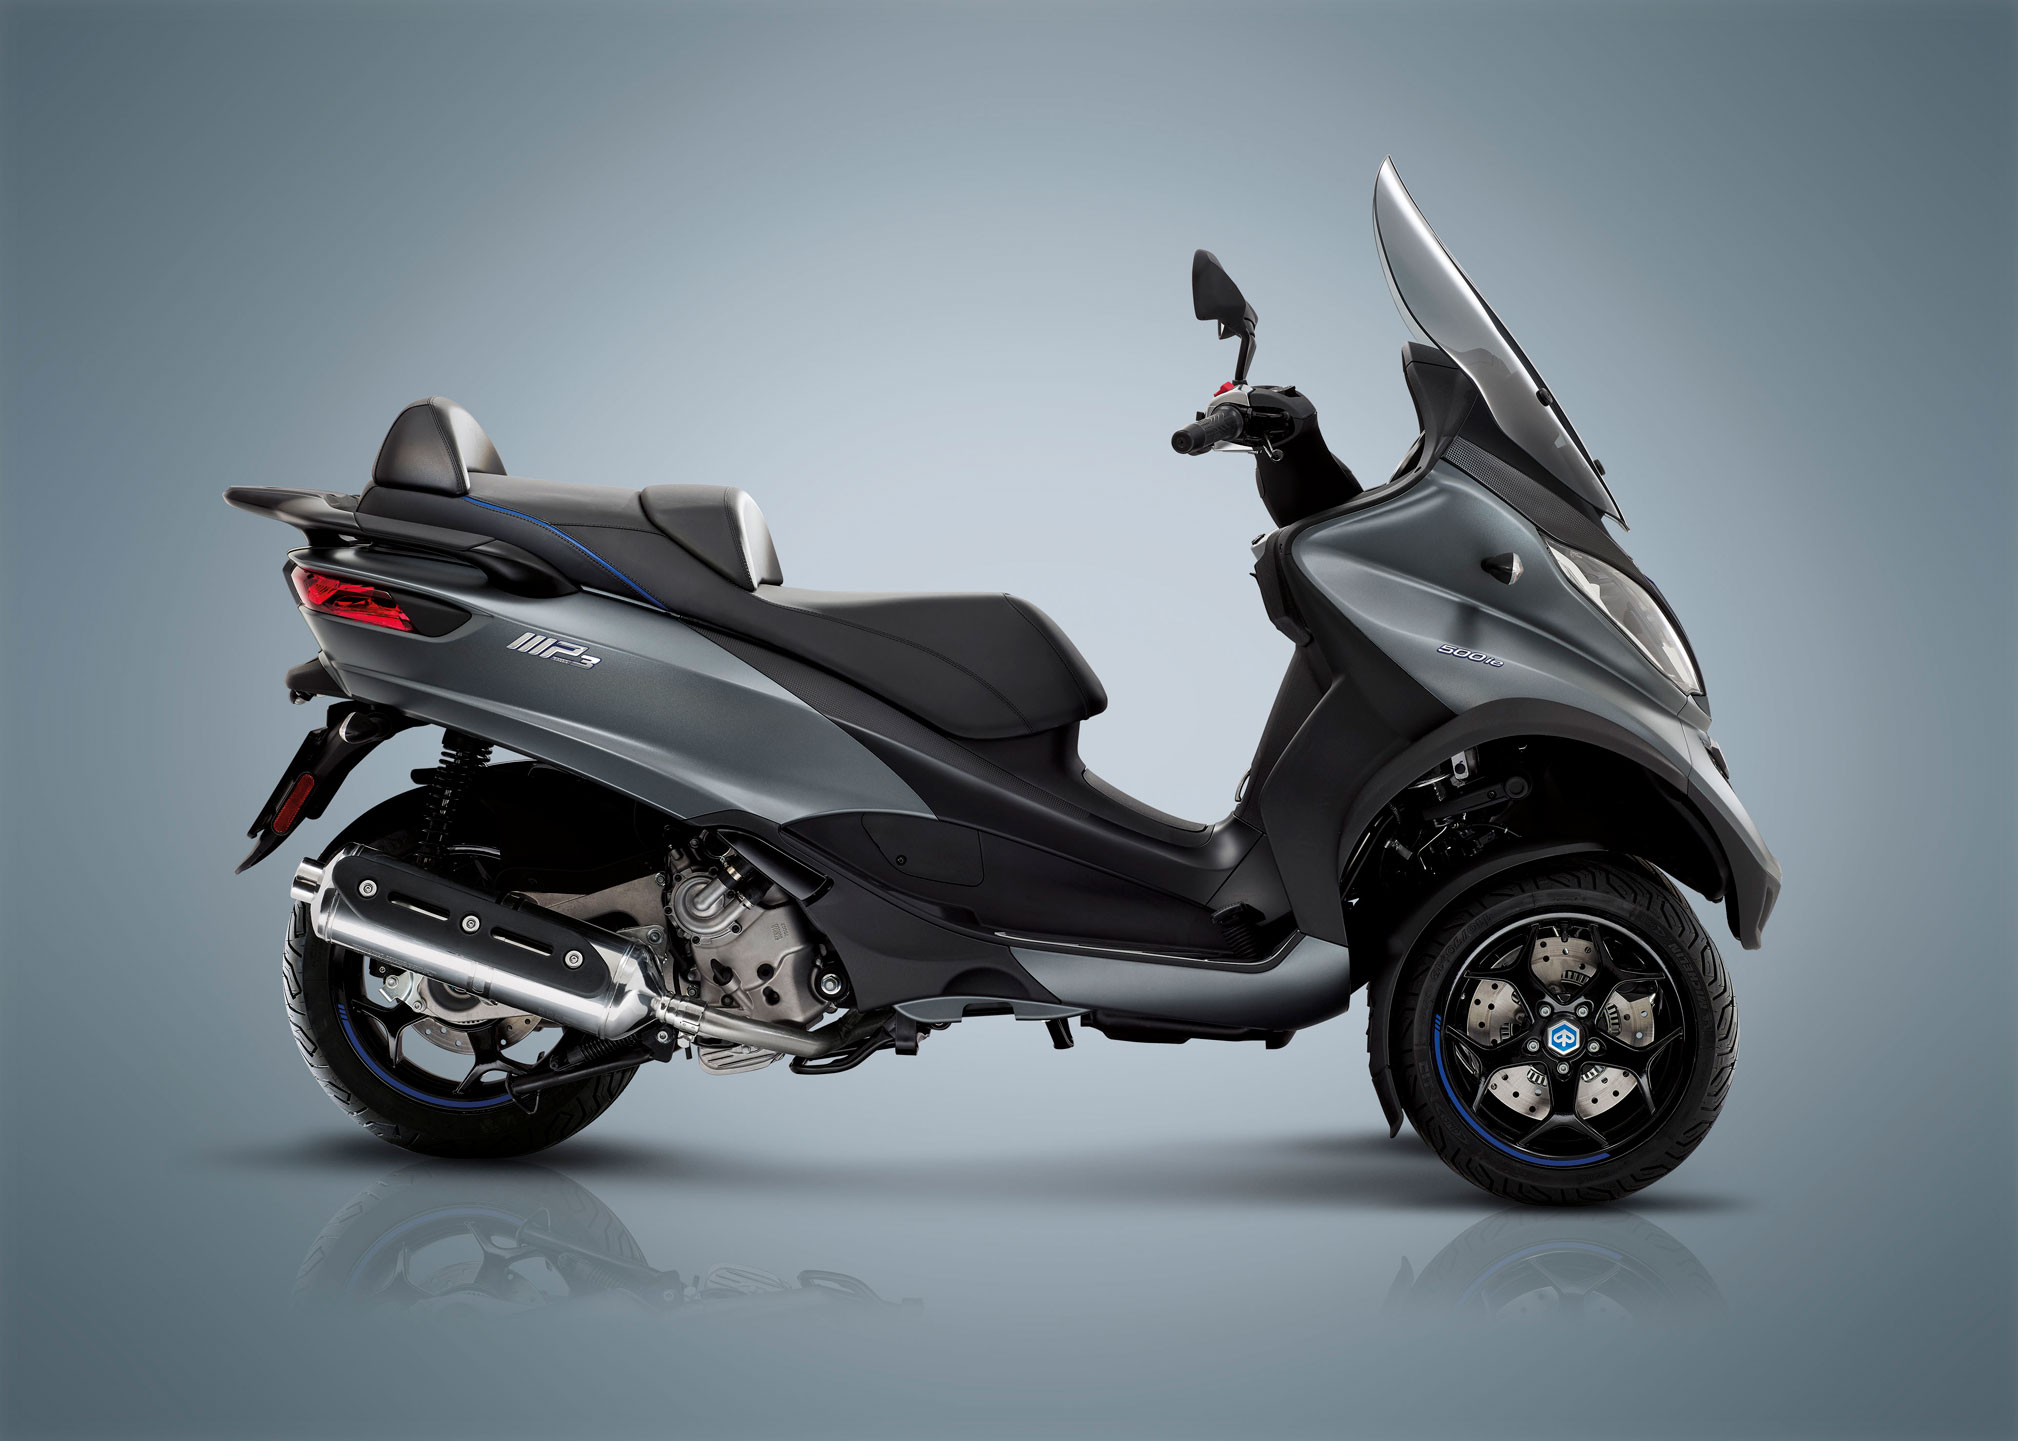 2018-Piaggio-MP3-500-Special-Edition-LT-ABS-ASR2